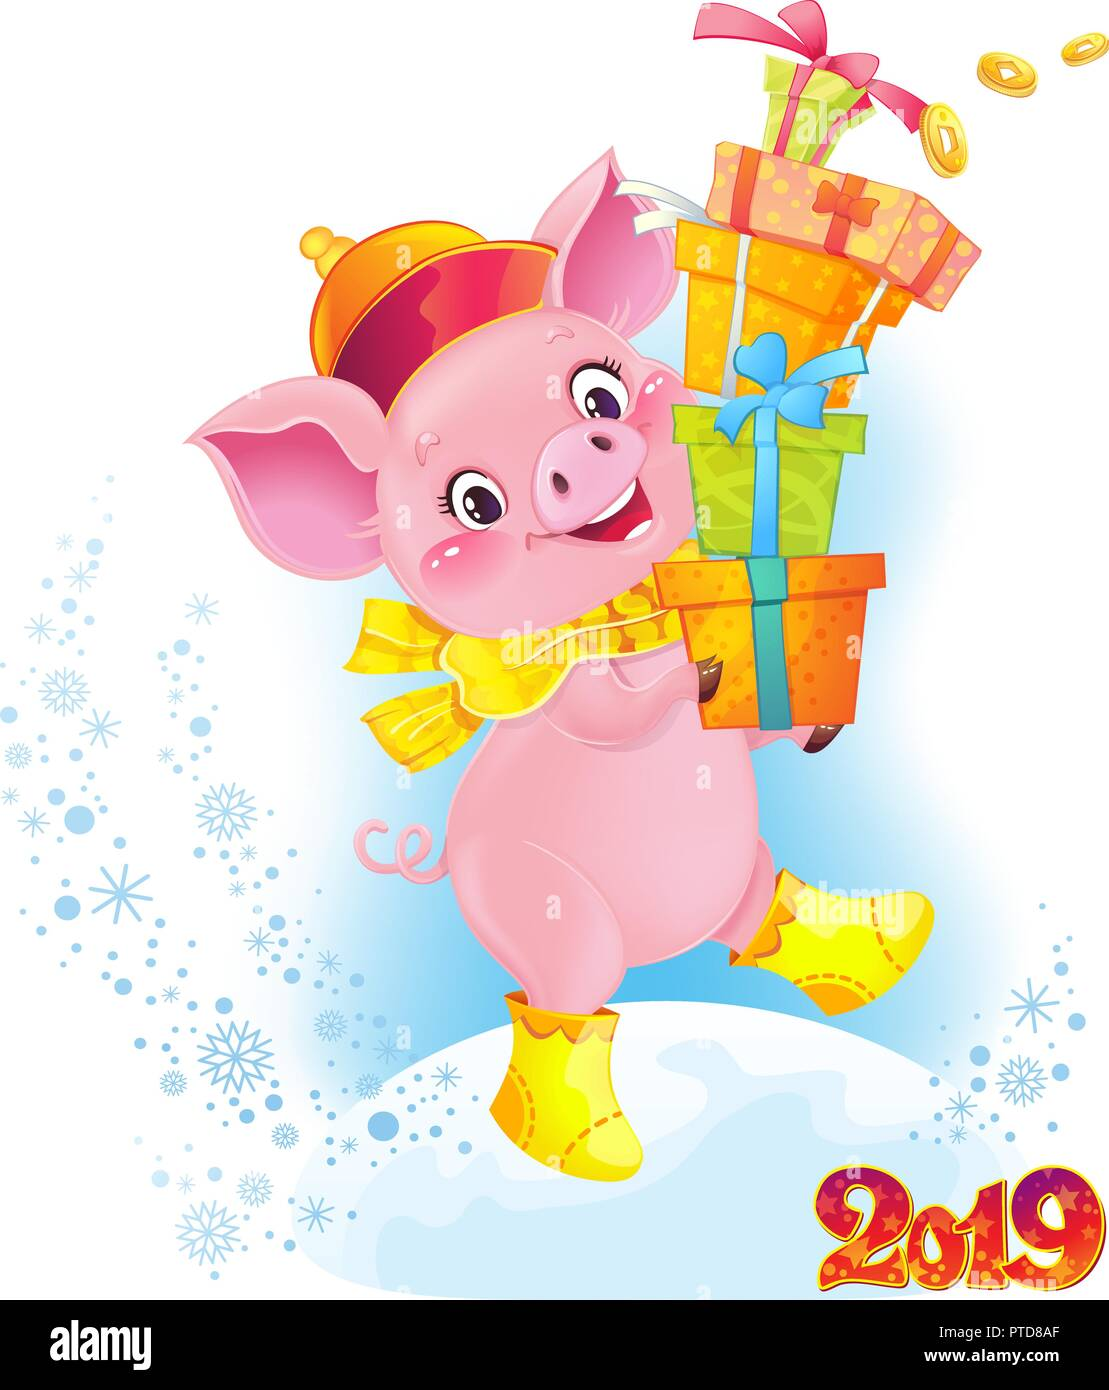 Yellow Earthy Pig With Gift Boxes Cute Symbol Of Chinese Horoscope